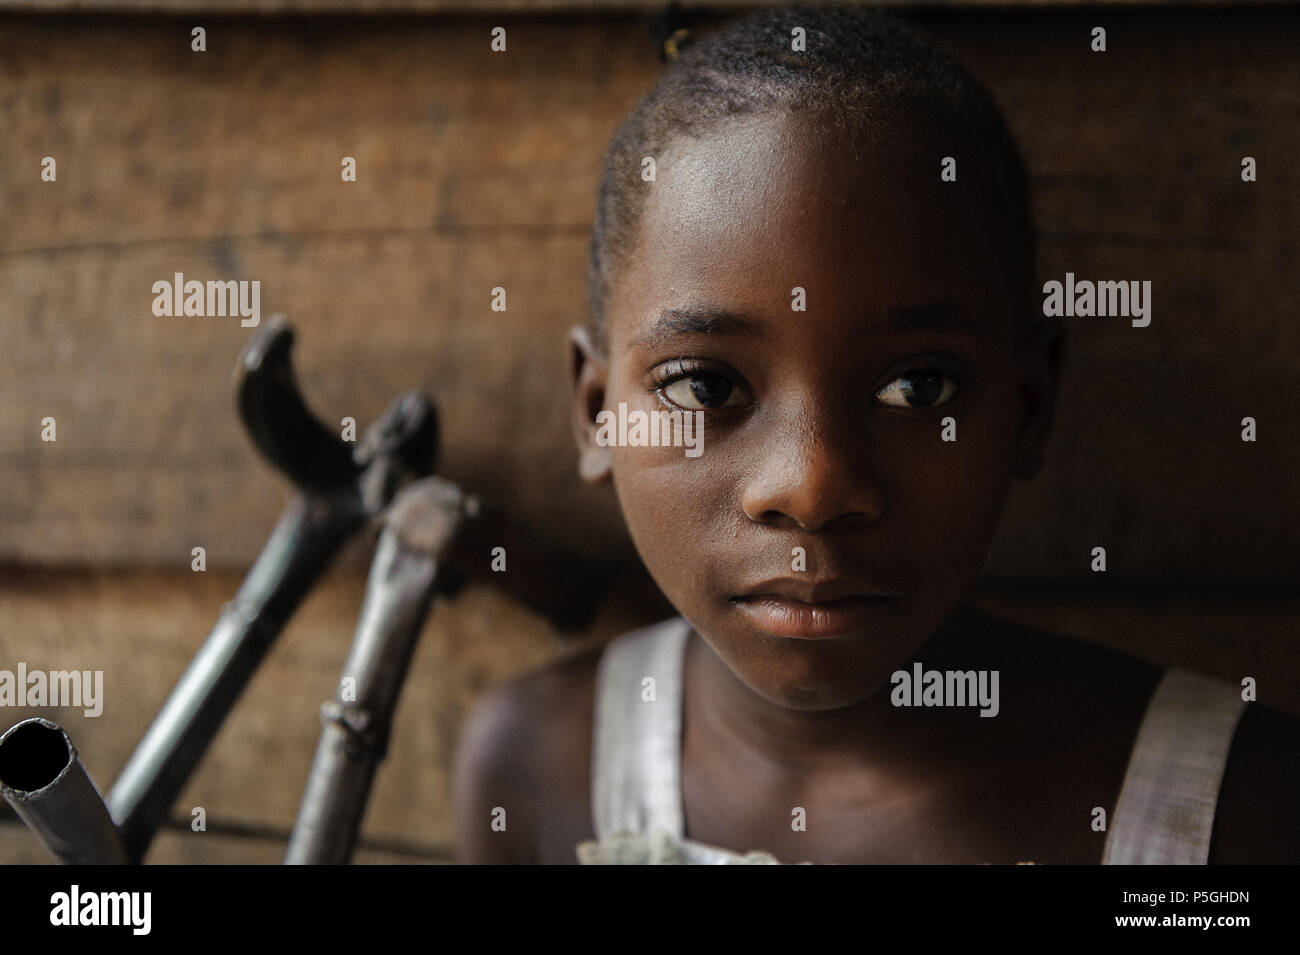 A young polio sufferer receives assistance from an NGO in Goma, North Kivu, Democratic Republic of Congo - Stock Image